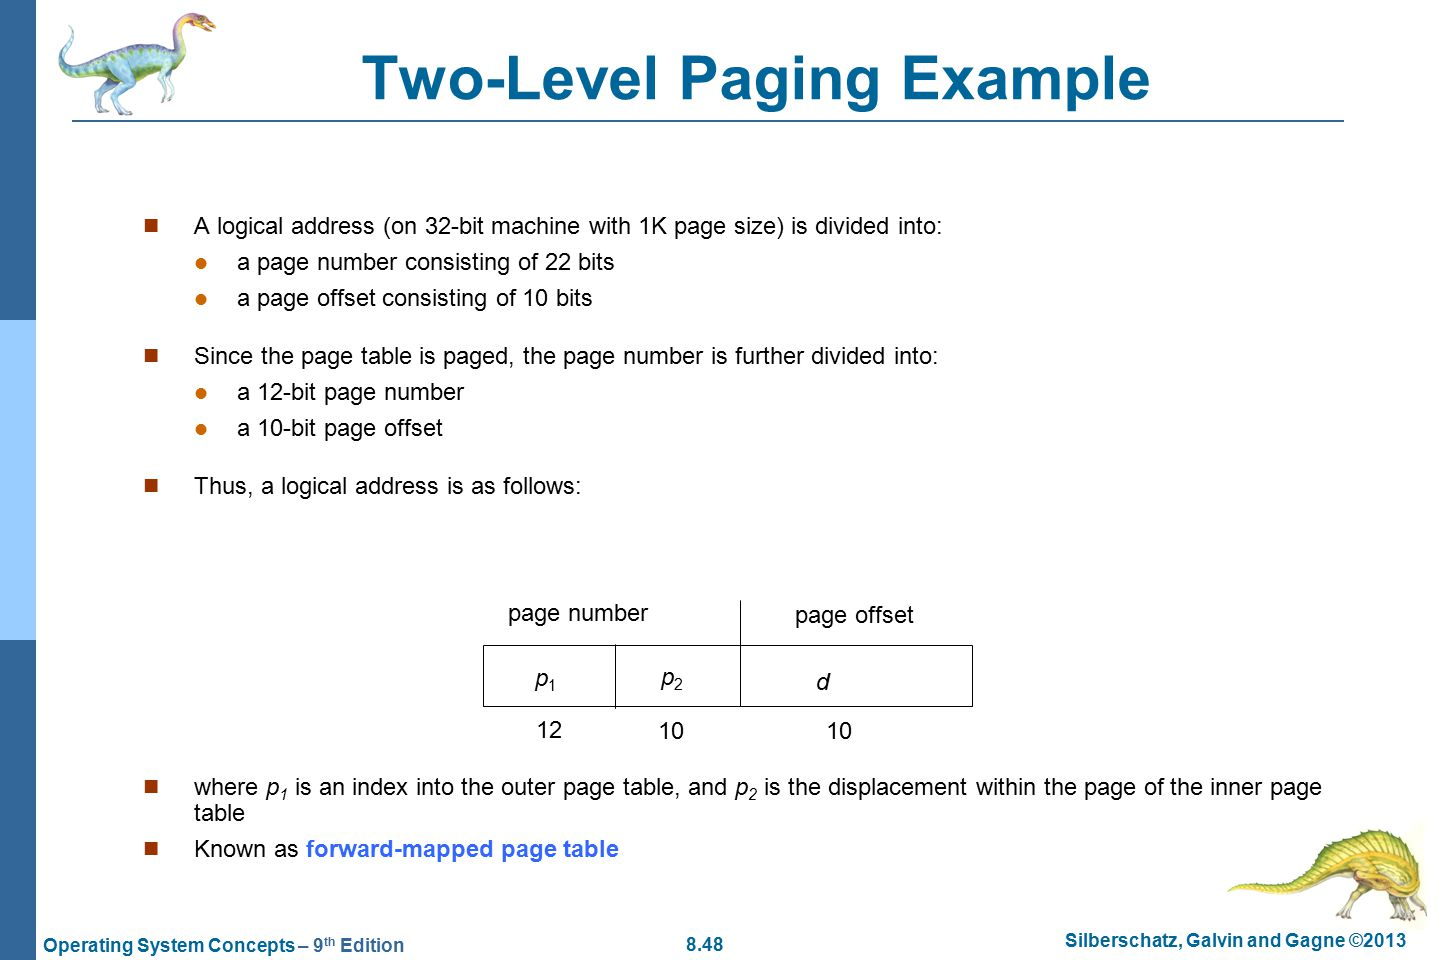 8.48 Silberschatz, Galvin and Gagne ©2013 Operating System Concepts – 9 th Edition Two-Level Paging Example A logical address (on 32-bit machine with 1K page size) is divided into: a page number consisting of 22 bits a page offset consisting of 10 bits Since the page table is paged, the page number is further divided into: a 12-bit page number a 10-bit page offset Thus, a logical address is as follows: where p 1 is an index into the outer page table, and p 2 is the displacement within the page of the inner page table Known as forward-mapped page table page number page offset p1p1 p2p2 d 12 10